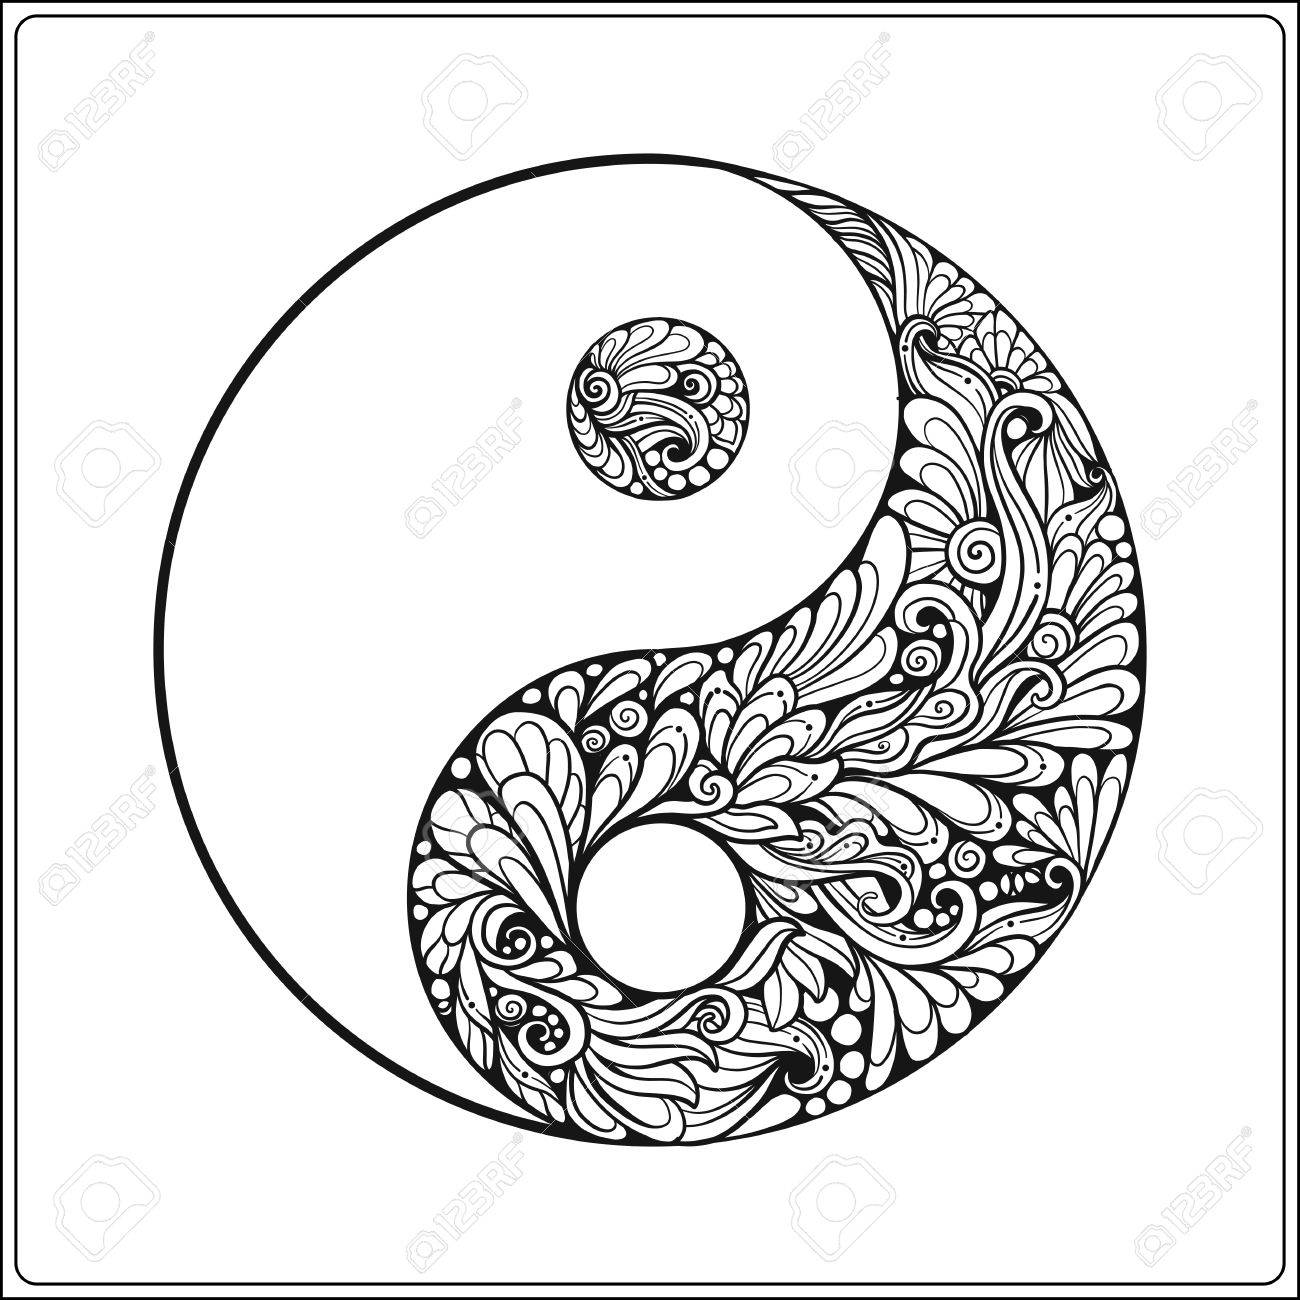 1300x1300 Symbol Of Yin And Yang. In Gold On Black Background Coloring